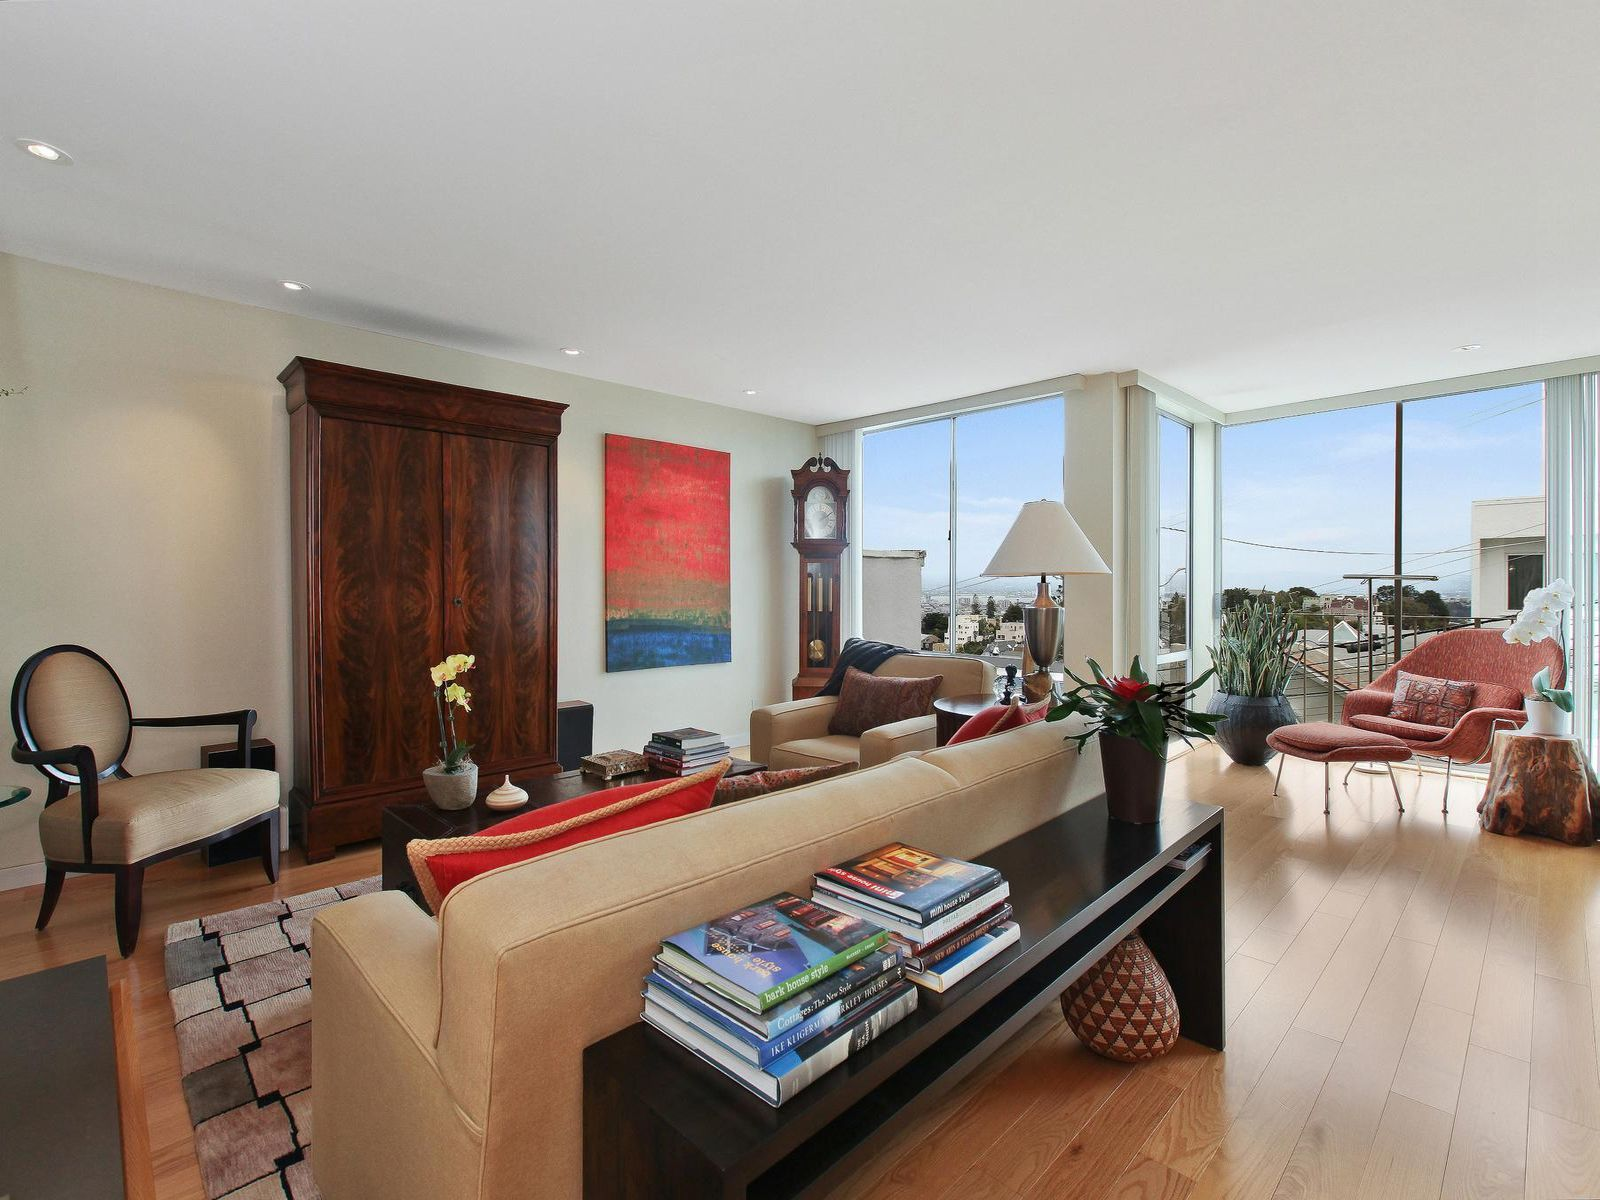 Jewel Box with Outstanding Views, San Francisco CA Other Residential - San Francisco Real Estate